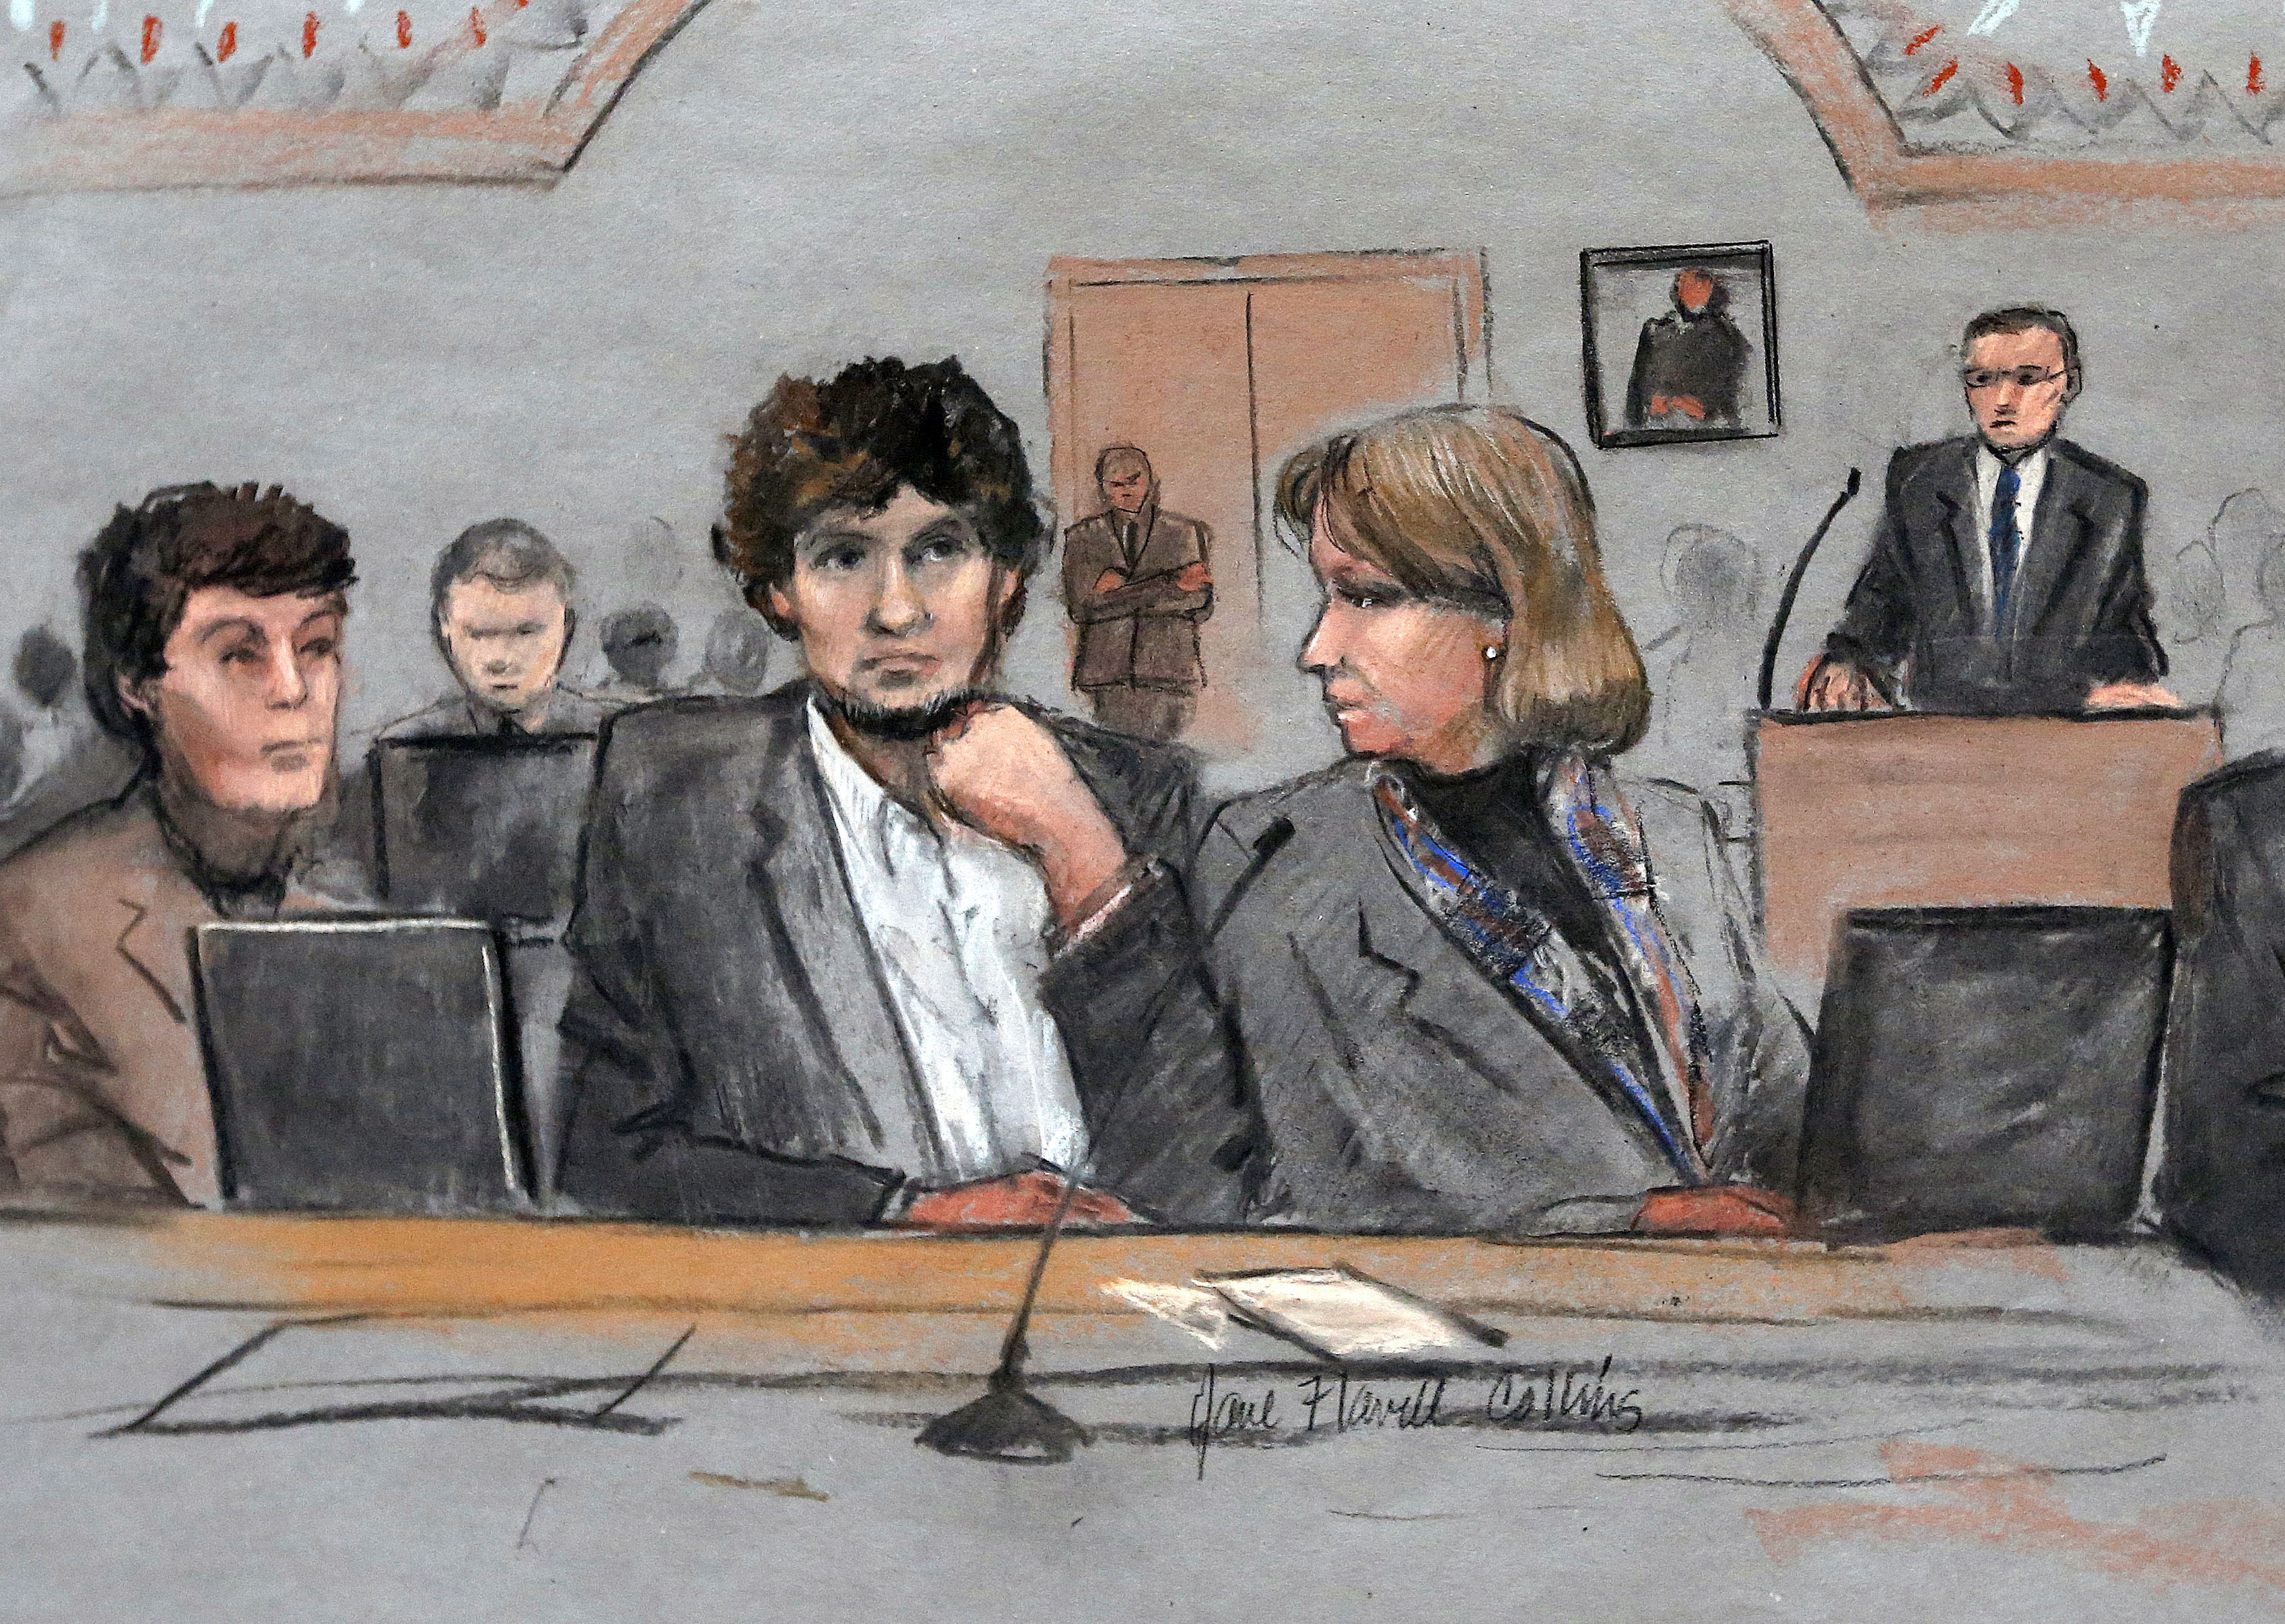 Prosecution rests its case against Boston Marathon bomber